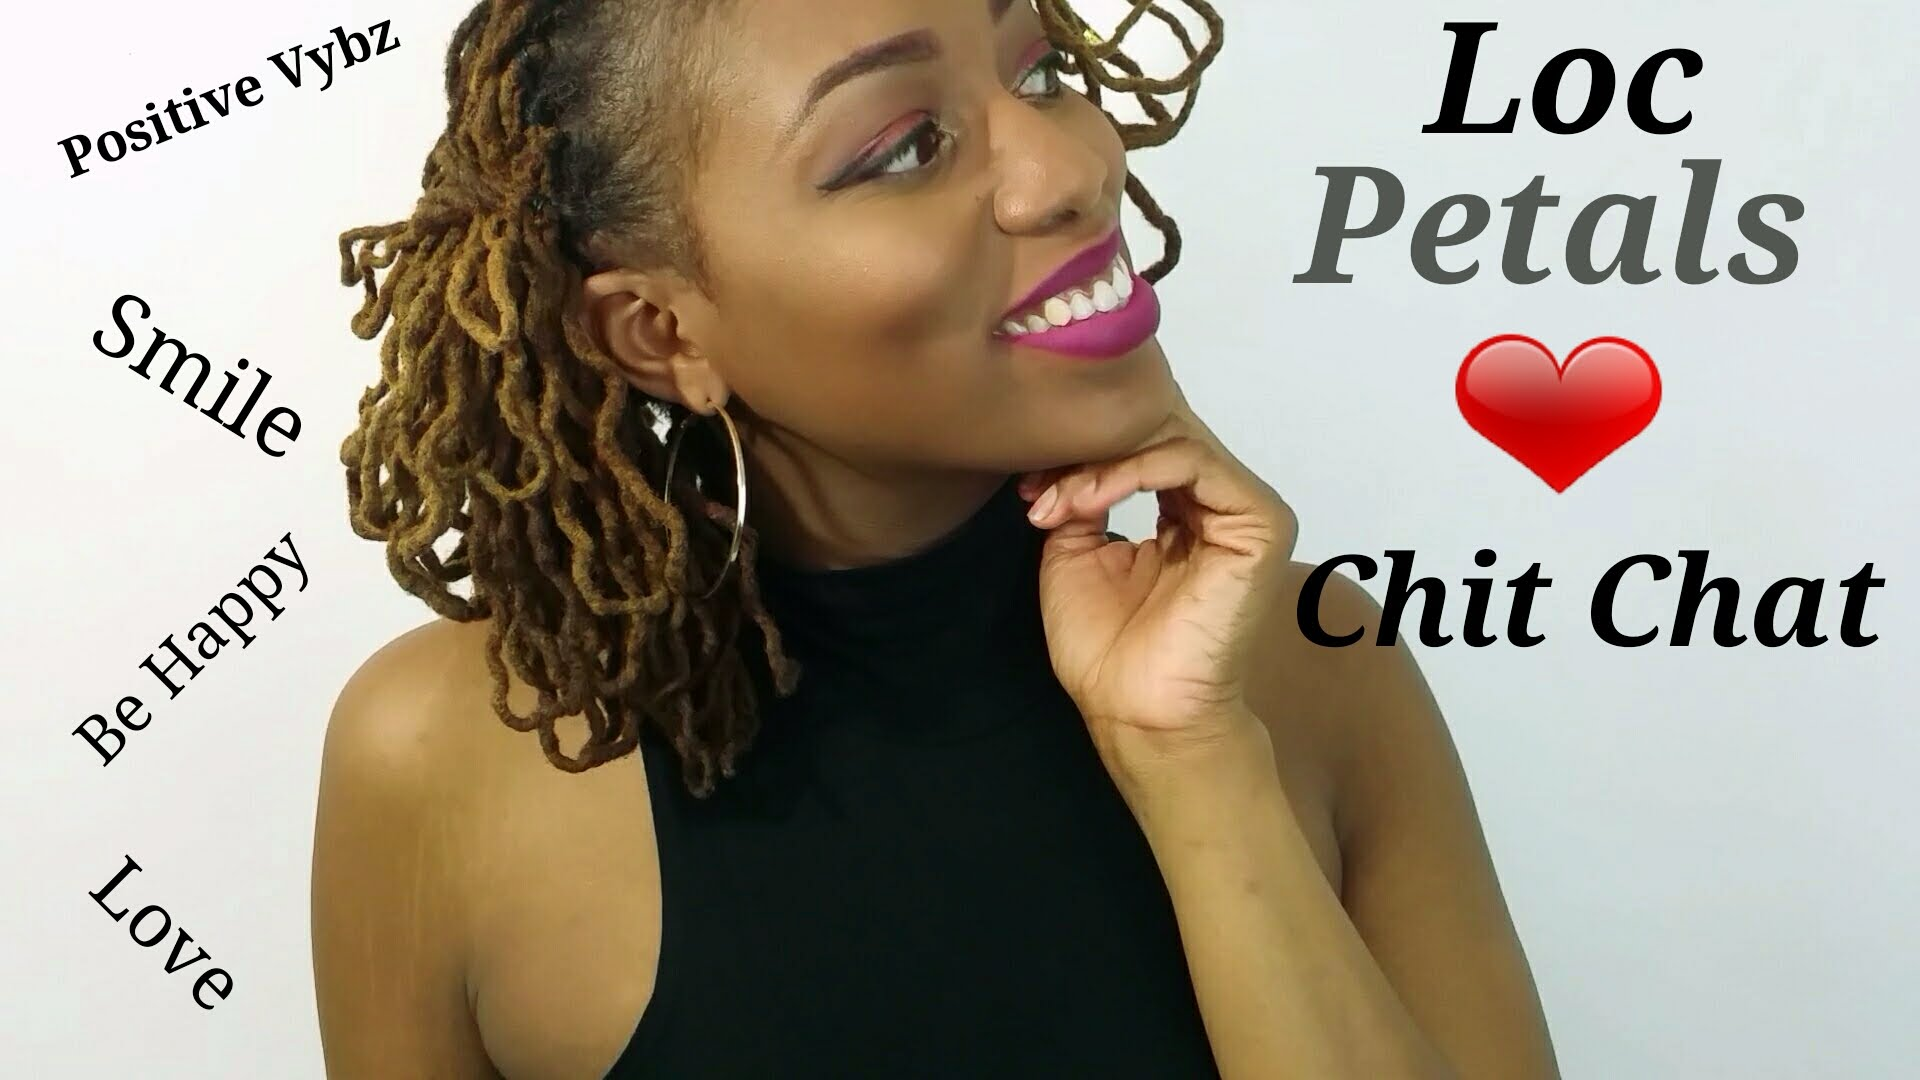 Loc Petals On Crinkly Locs Chit Chat Dread Videos